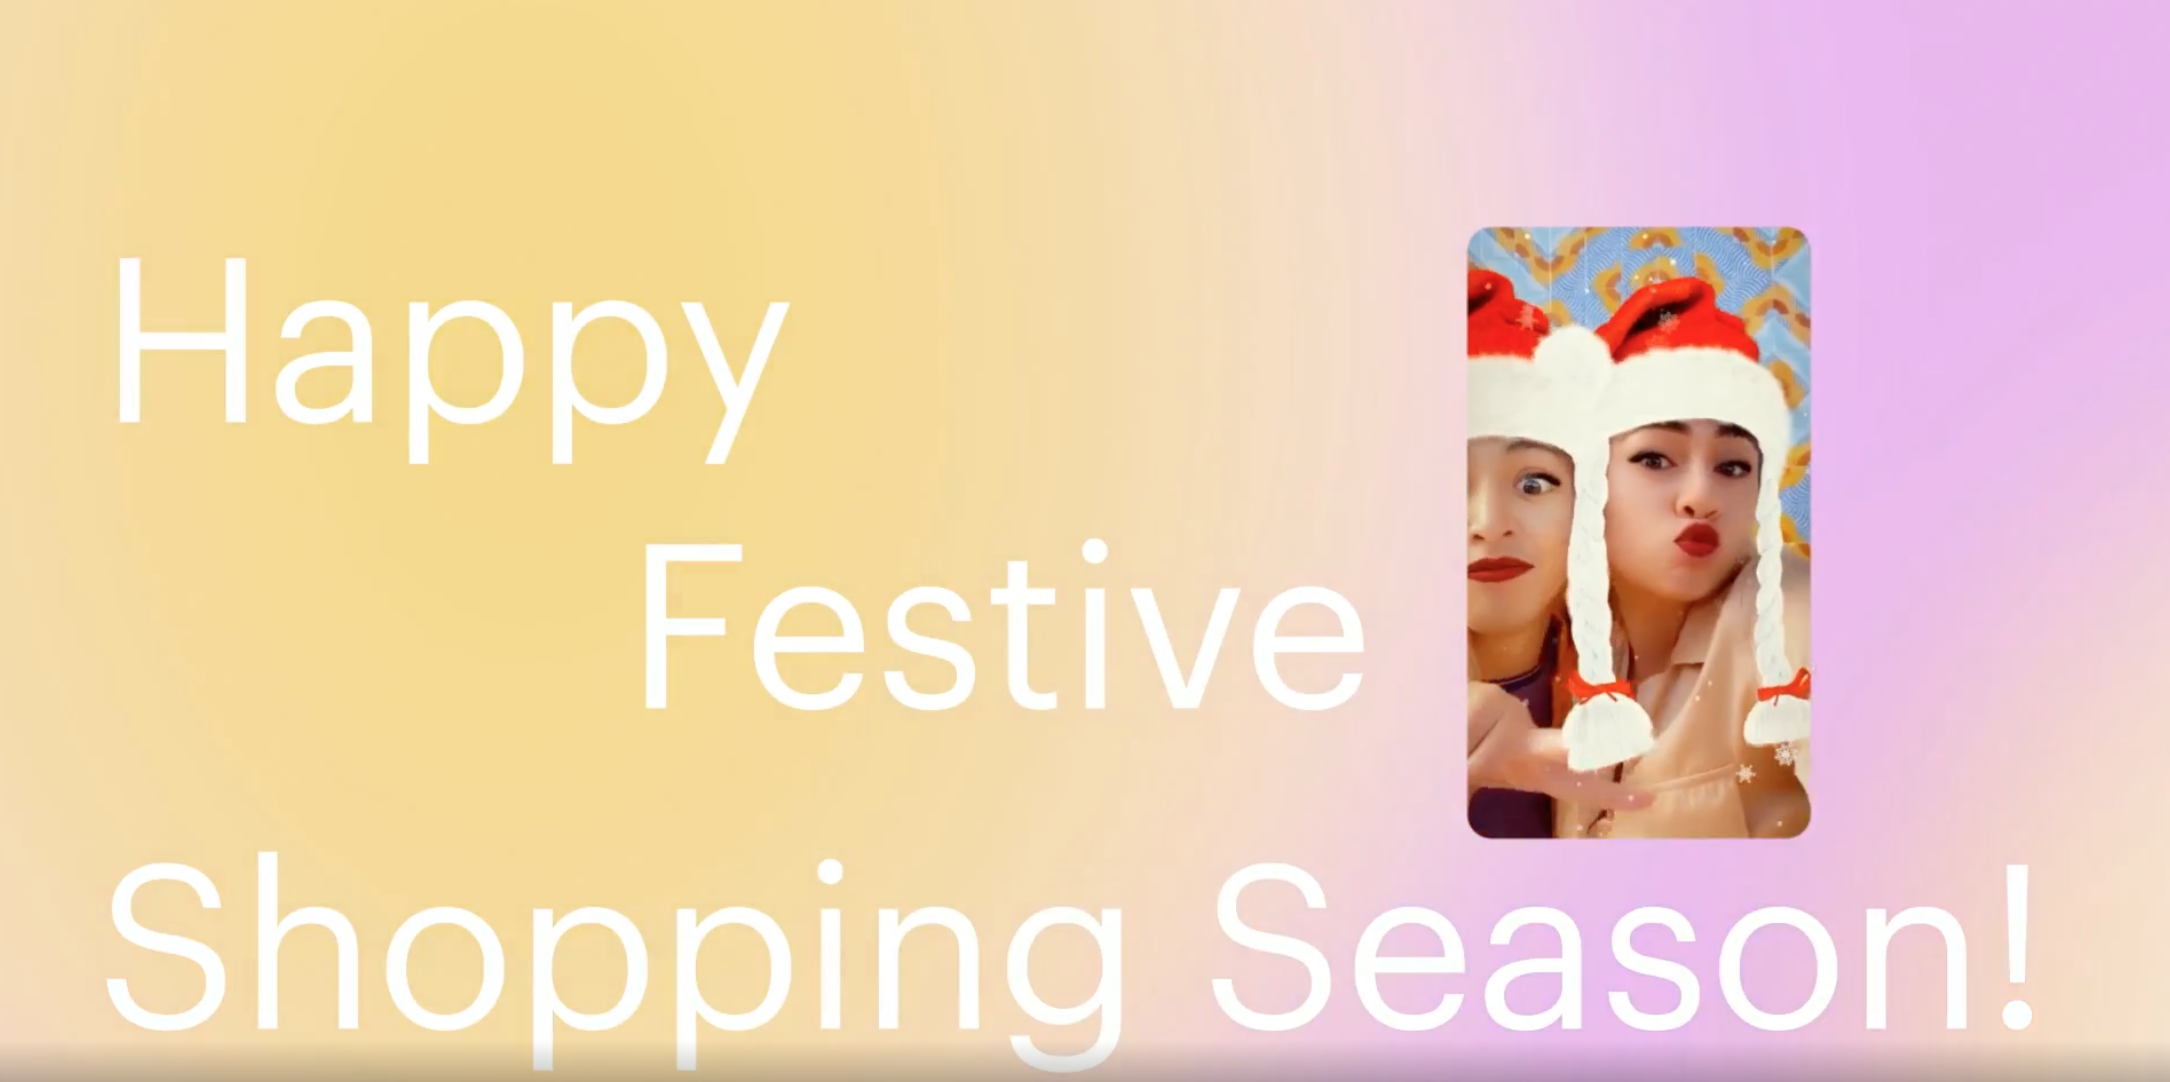 Download the full festive holiday guides from major social networks in a click. Become part of trends and earn an online reputation easily.  New Trends and Tips to Plan a Strategic Holiday Season in 2021 by Publer.io